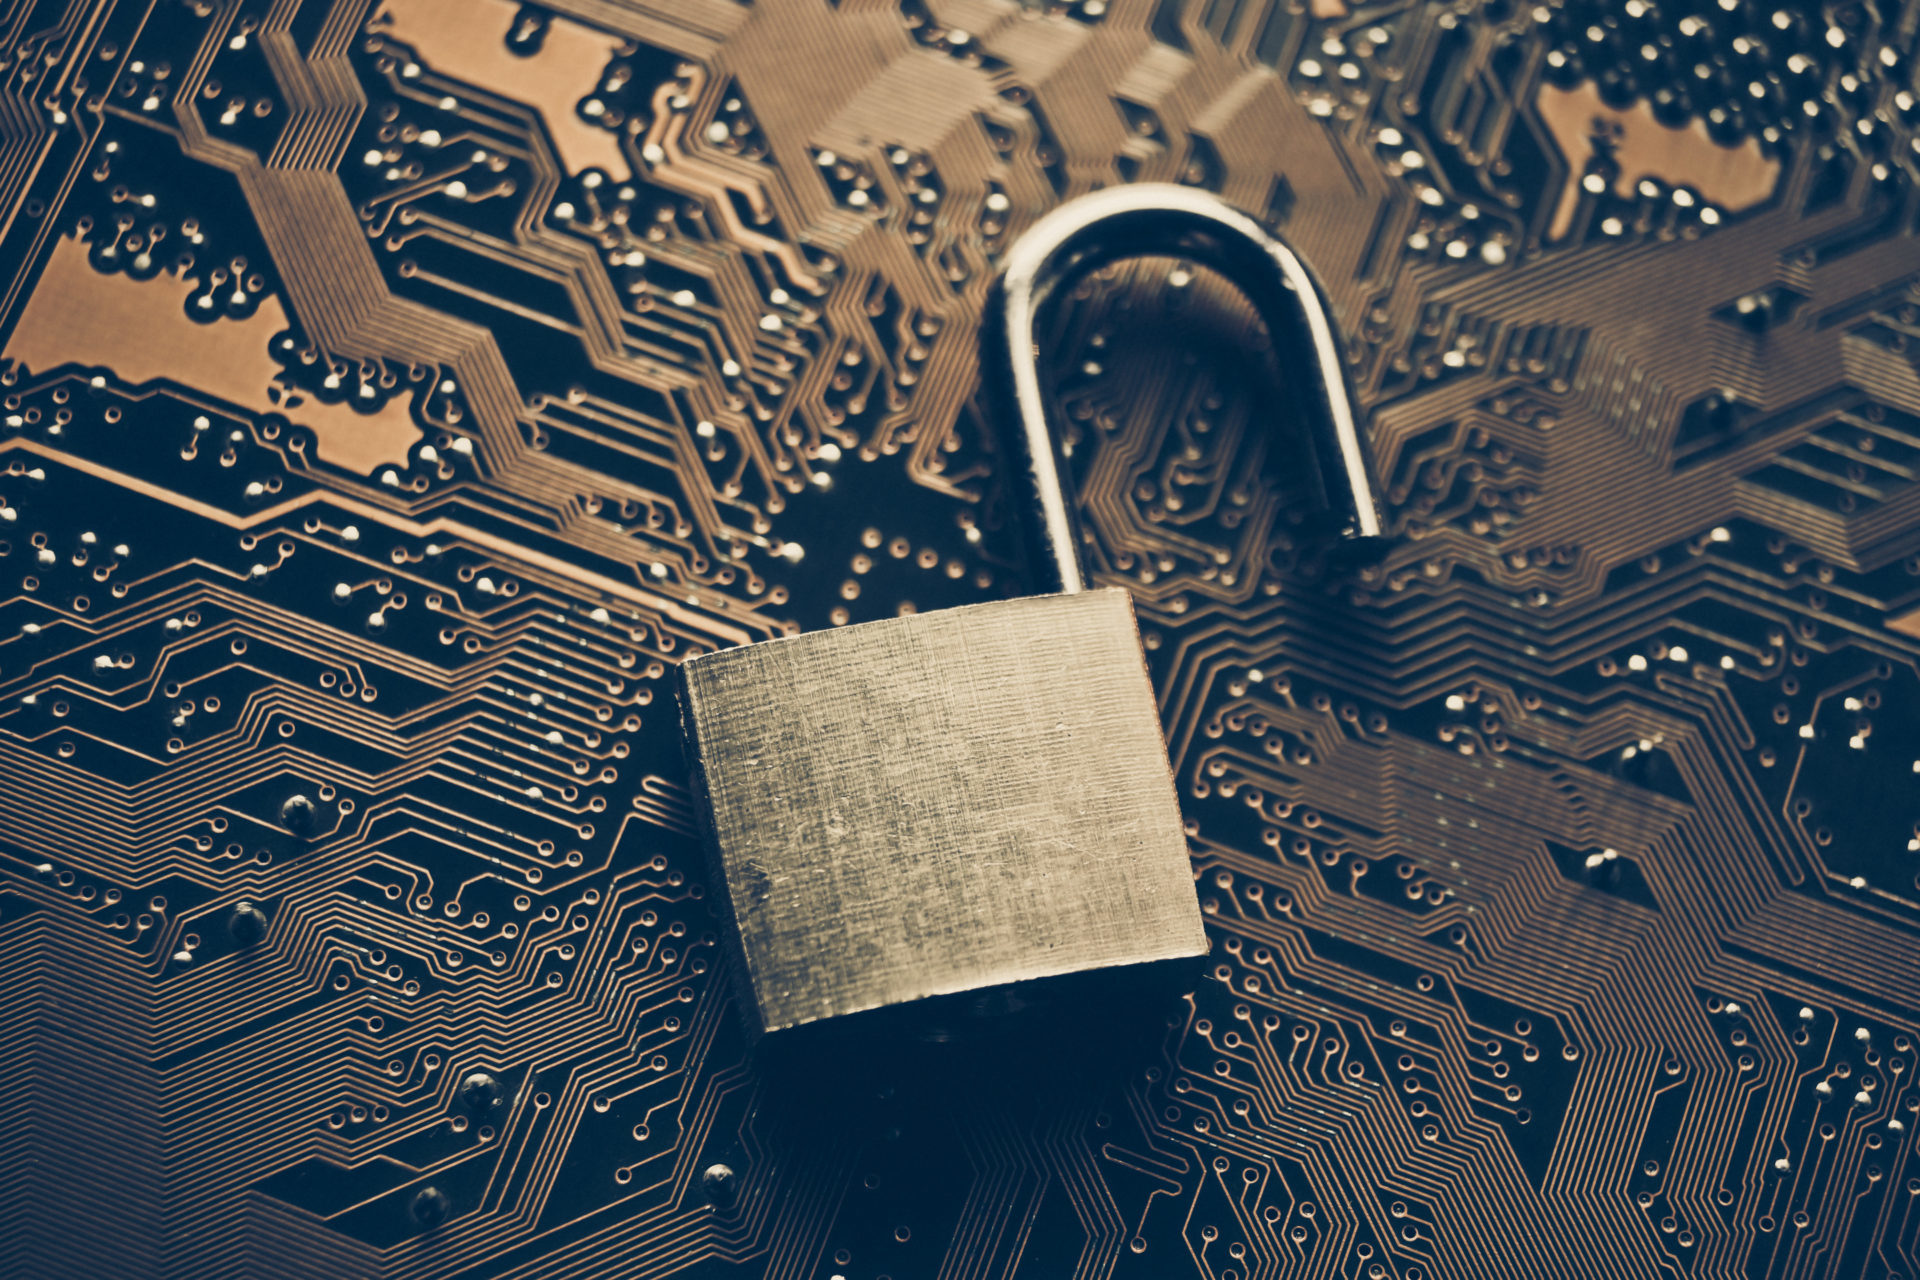 Unsecured MongoDB database leaves details from 200 million CVs exposed